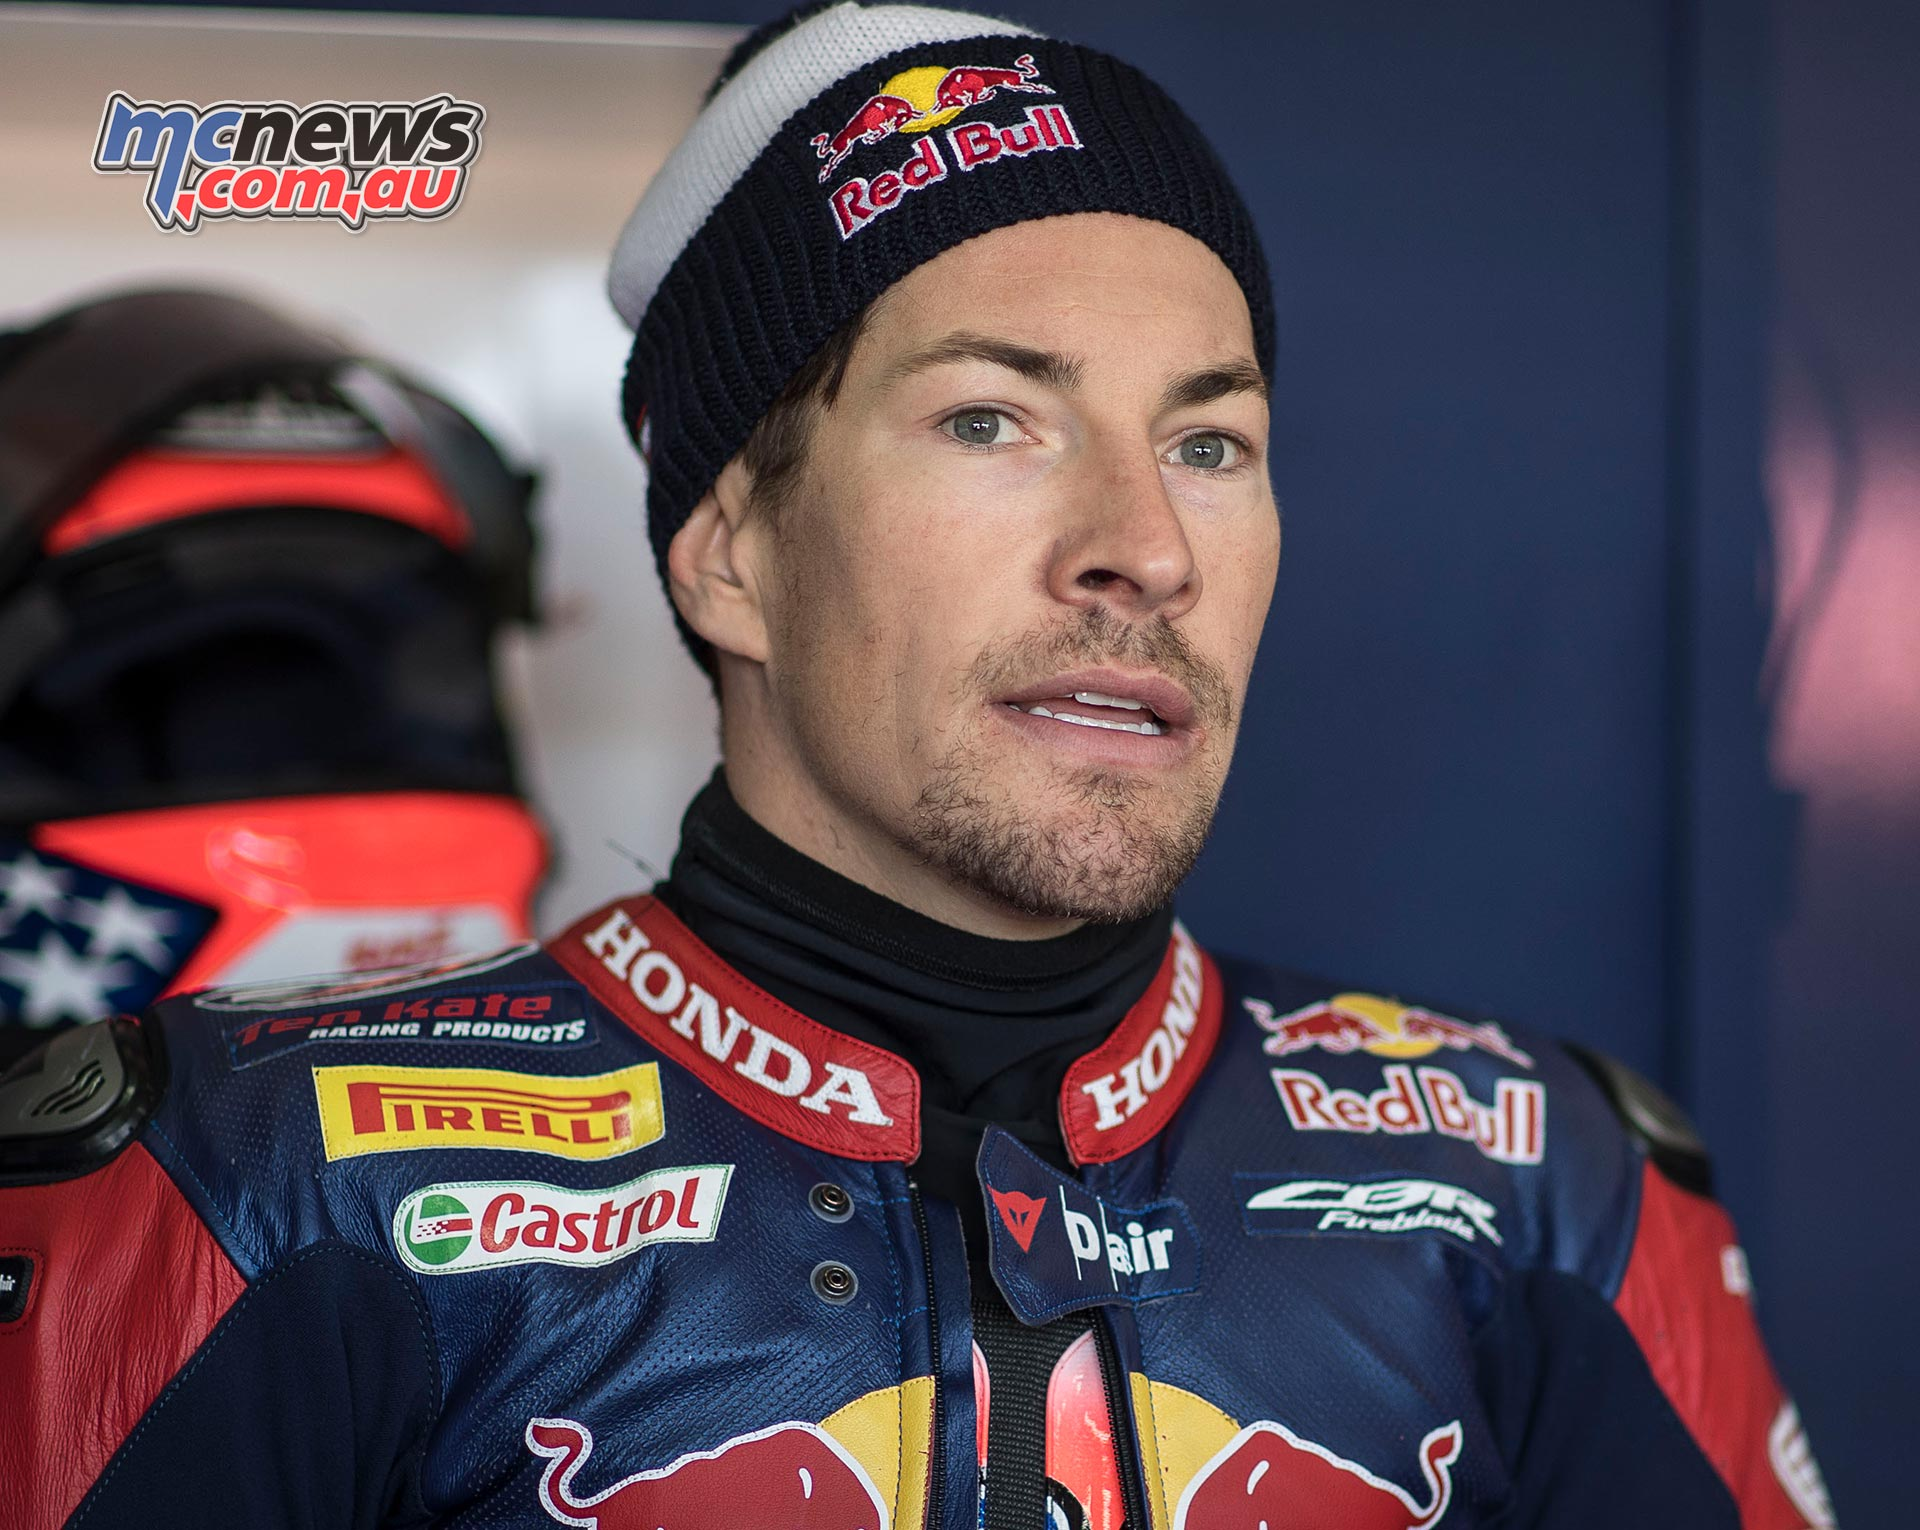 Nicky Hayden pictured earlier this year in Aragon